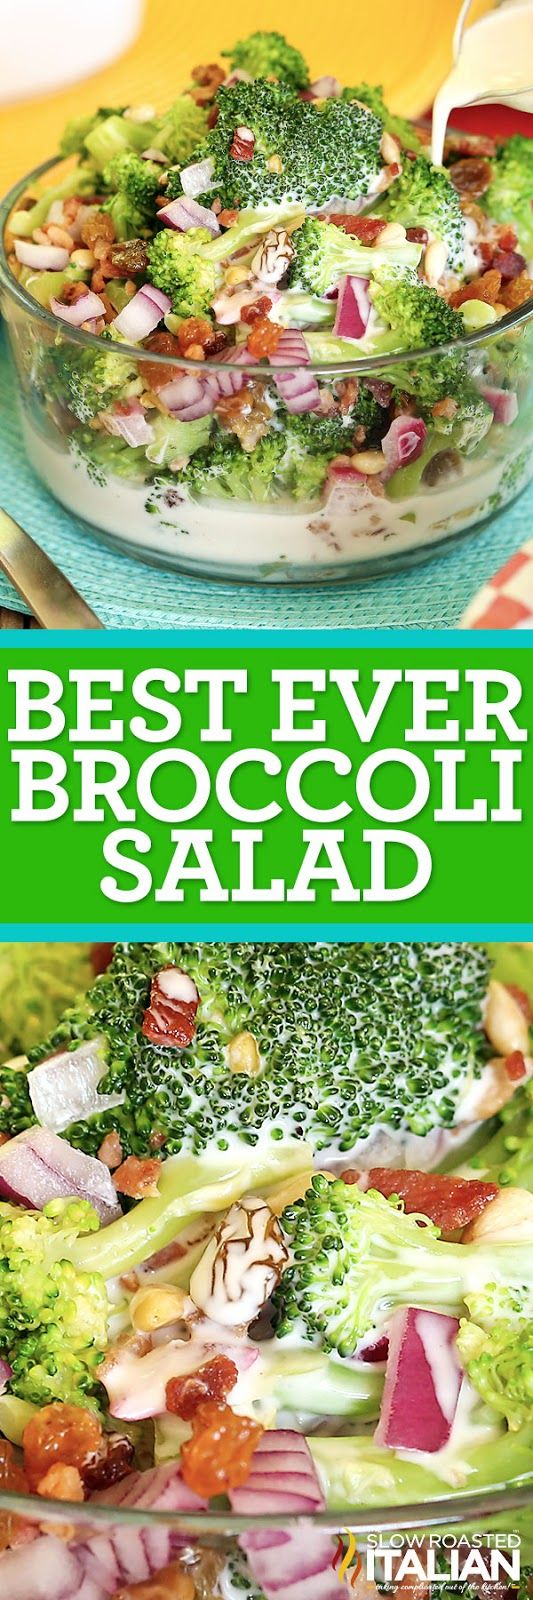 The Best Ever Broccoli Salad is a simple recipe combining broccoli, bacon, raisins, onion and nuts.  They come together in the most amazing summer salad yet.  The sweet and creamy dressing really makes this the perfect summer side that you won't be able to get enough of!